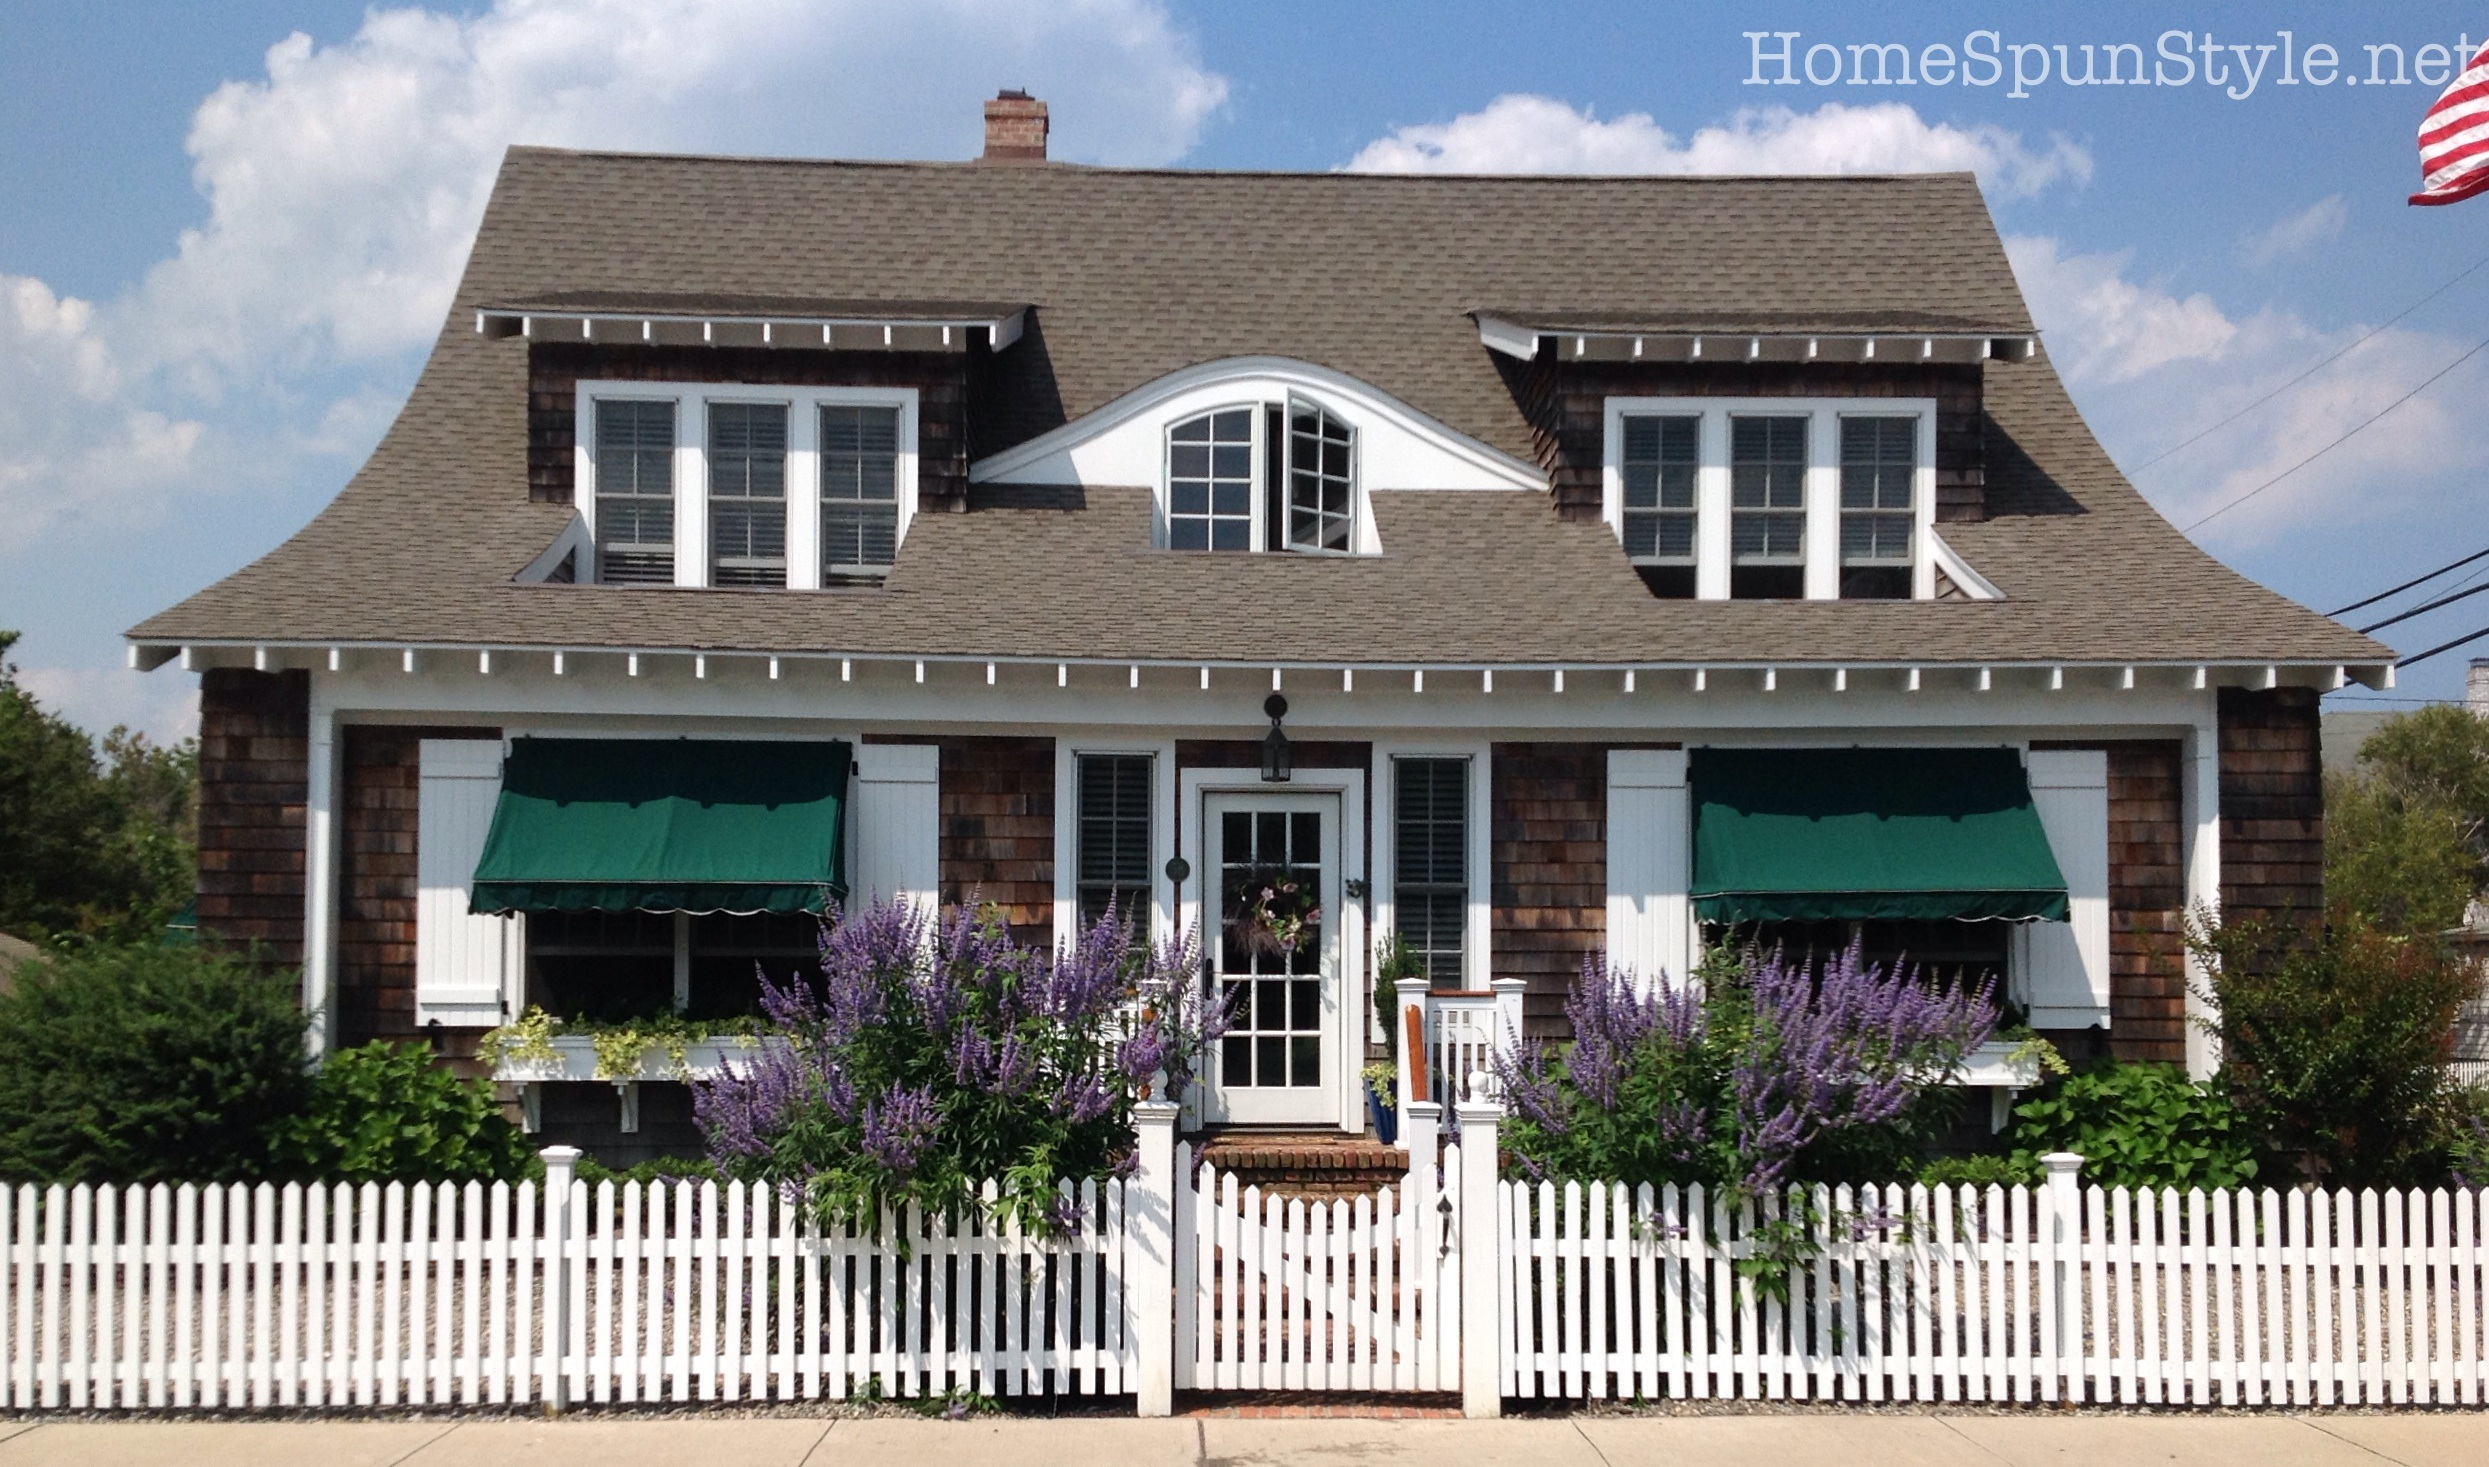 Awnings and Porch Valances – Home Spun Style